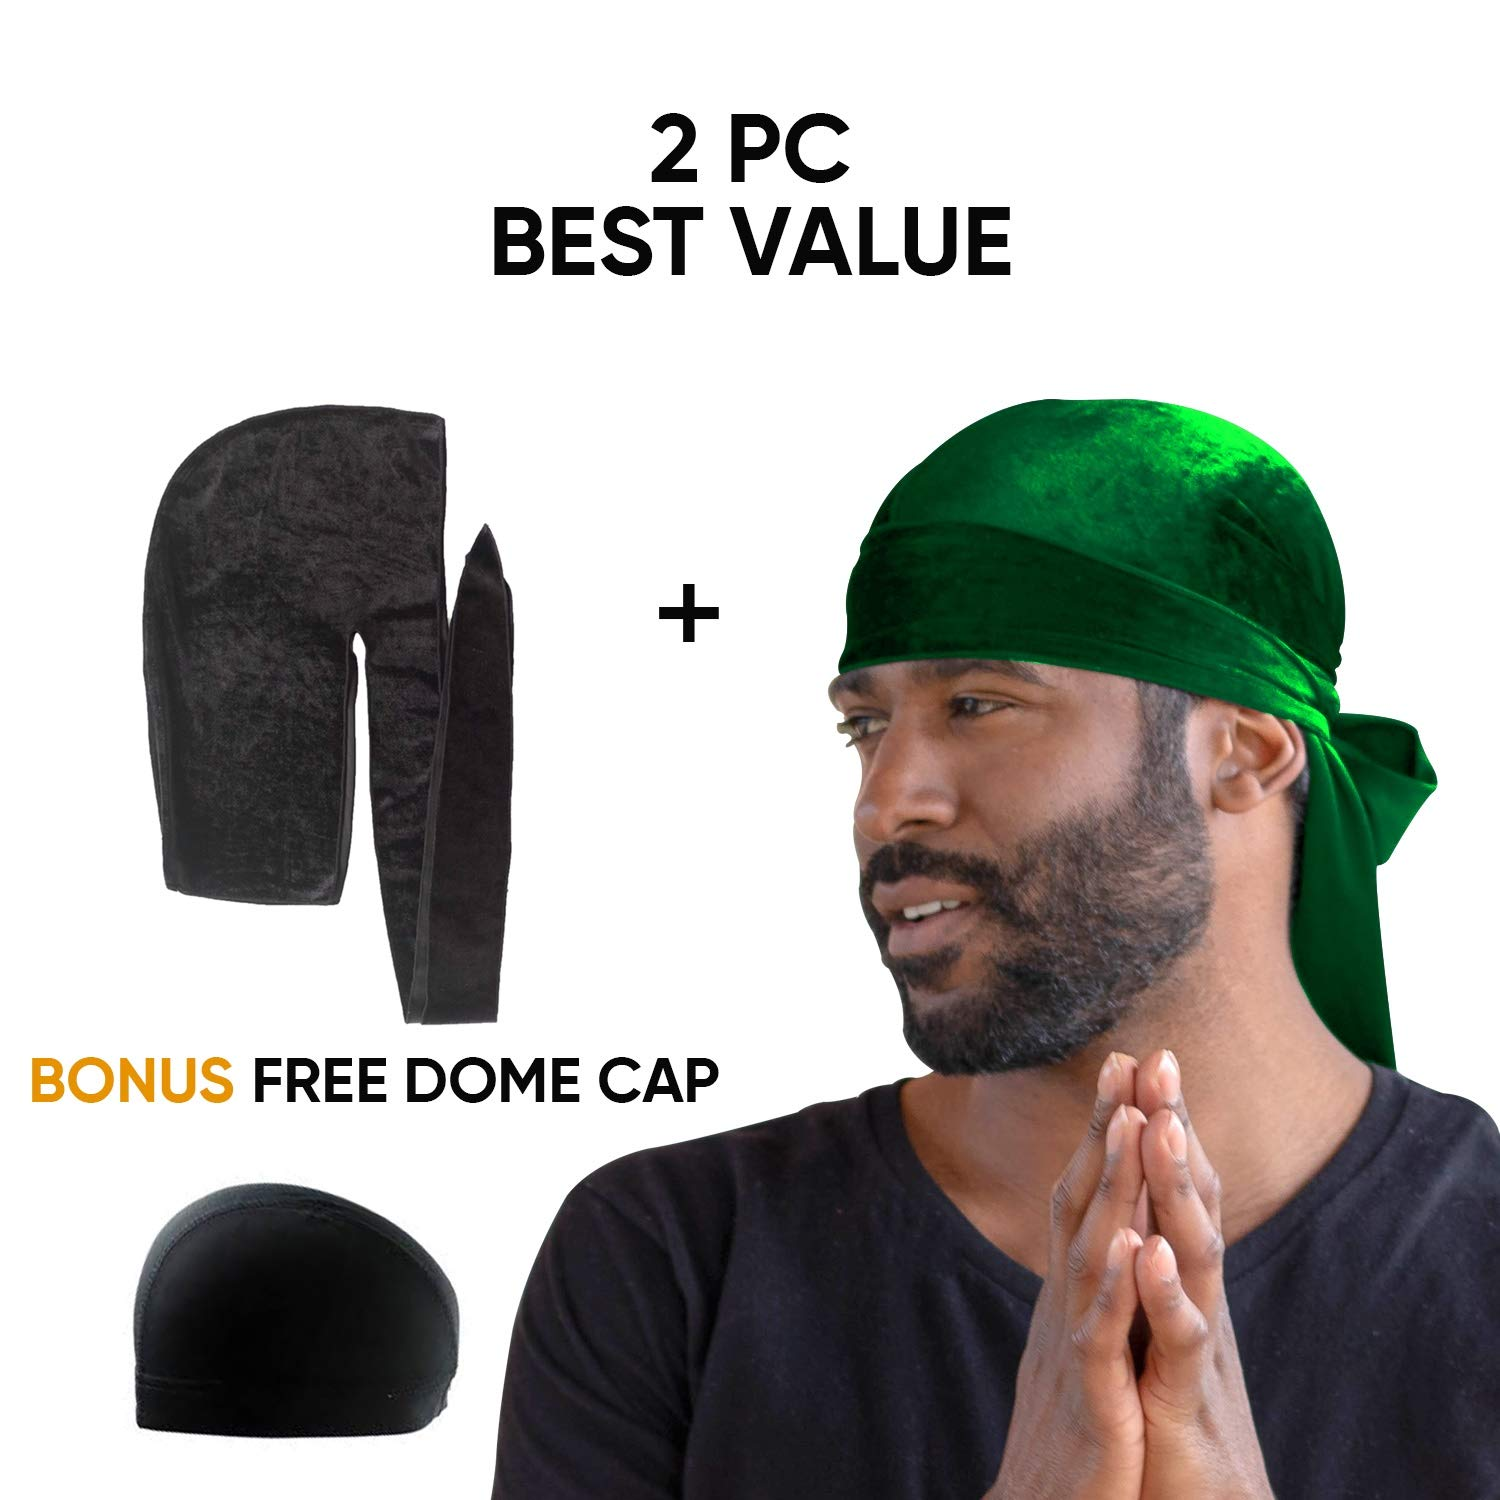 Amazon.com : Royal Waves Velvet Premium Durag - Extra Long Straps, One Size  Fits All for 360 Waves - 2 Pieces (Black/Green) : Beauty